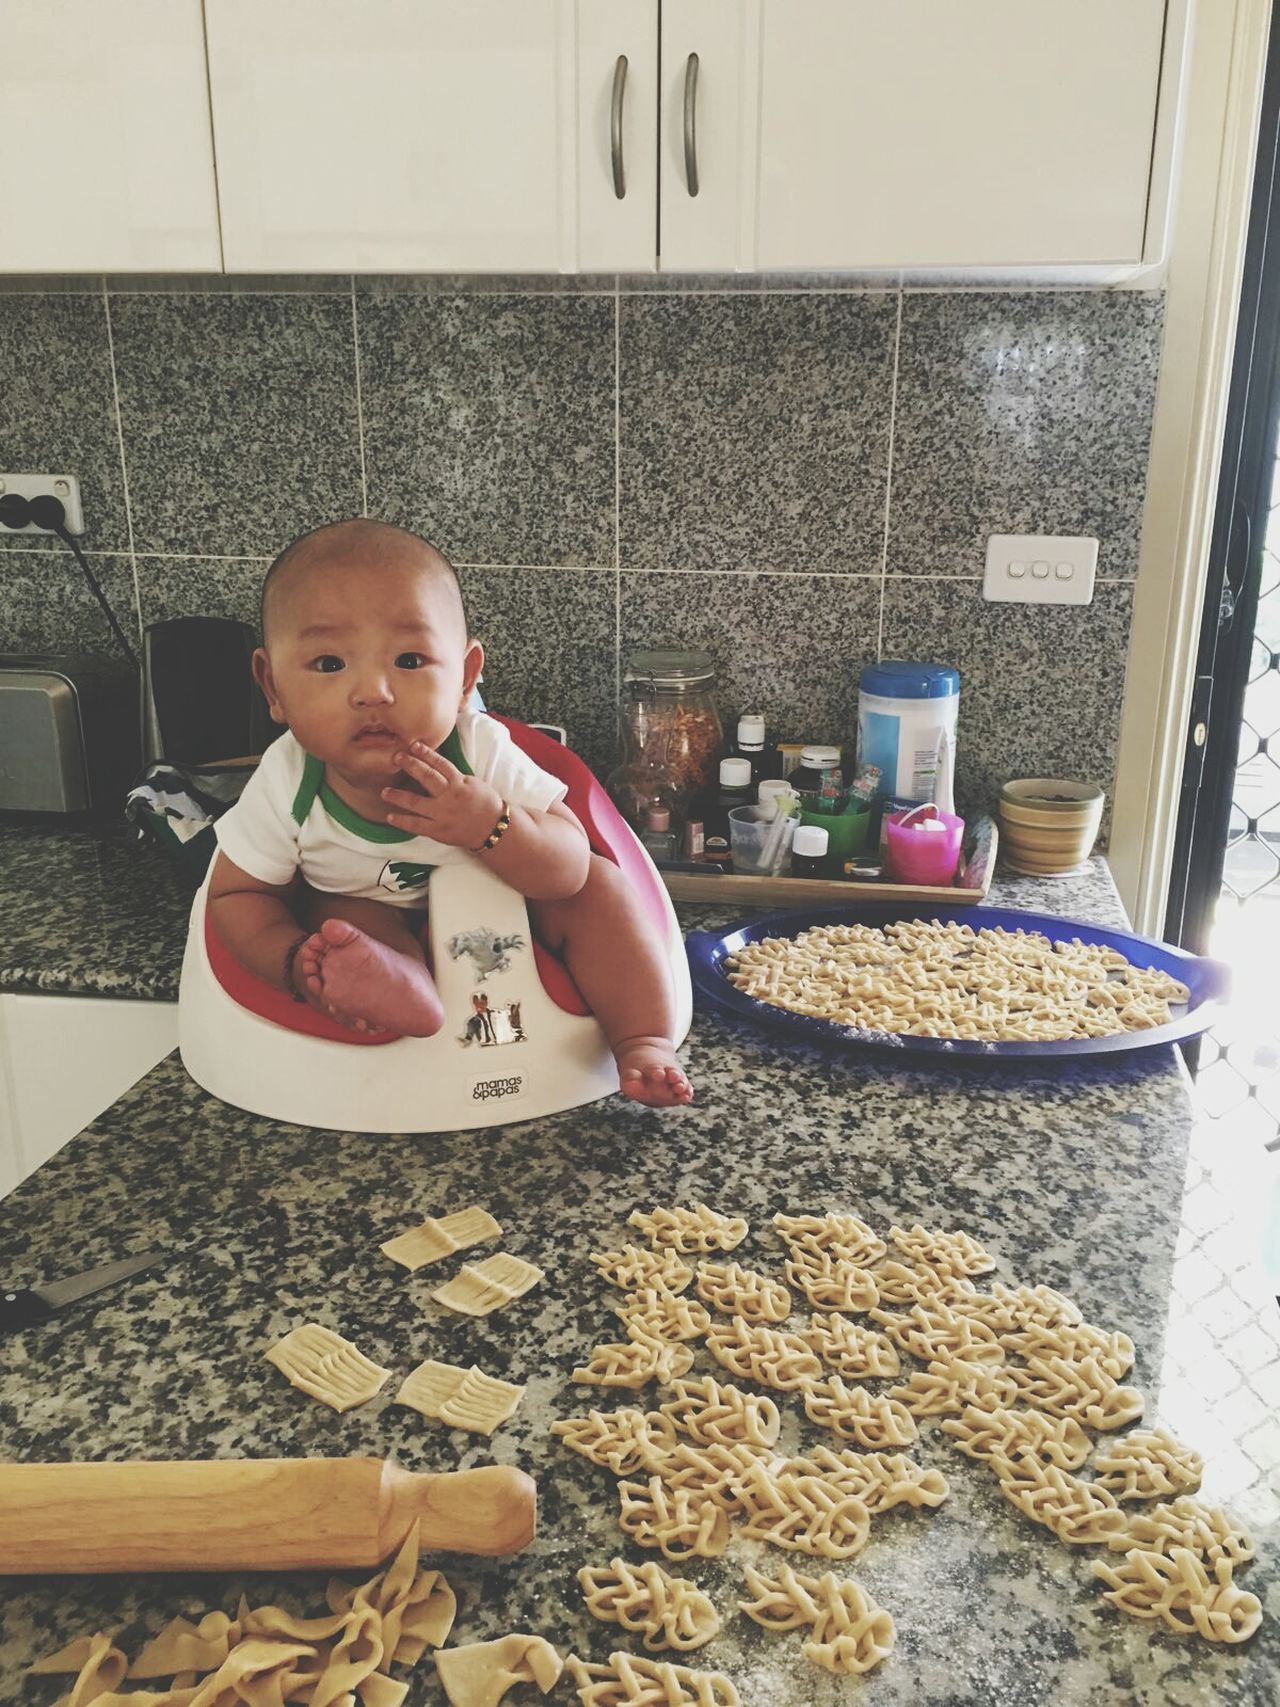 Since Tibetan new year is round the corner. Baby Domestic Kitchen NewYear Tibetan  Babyboy Baby Photography Mynephewiscuterthanyours First Eyeem Photo EyeEmNewHere EyeEmNewHere EyeEmNewHere